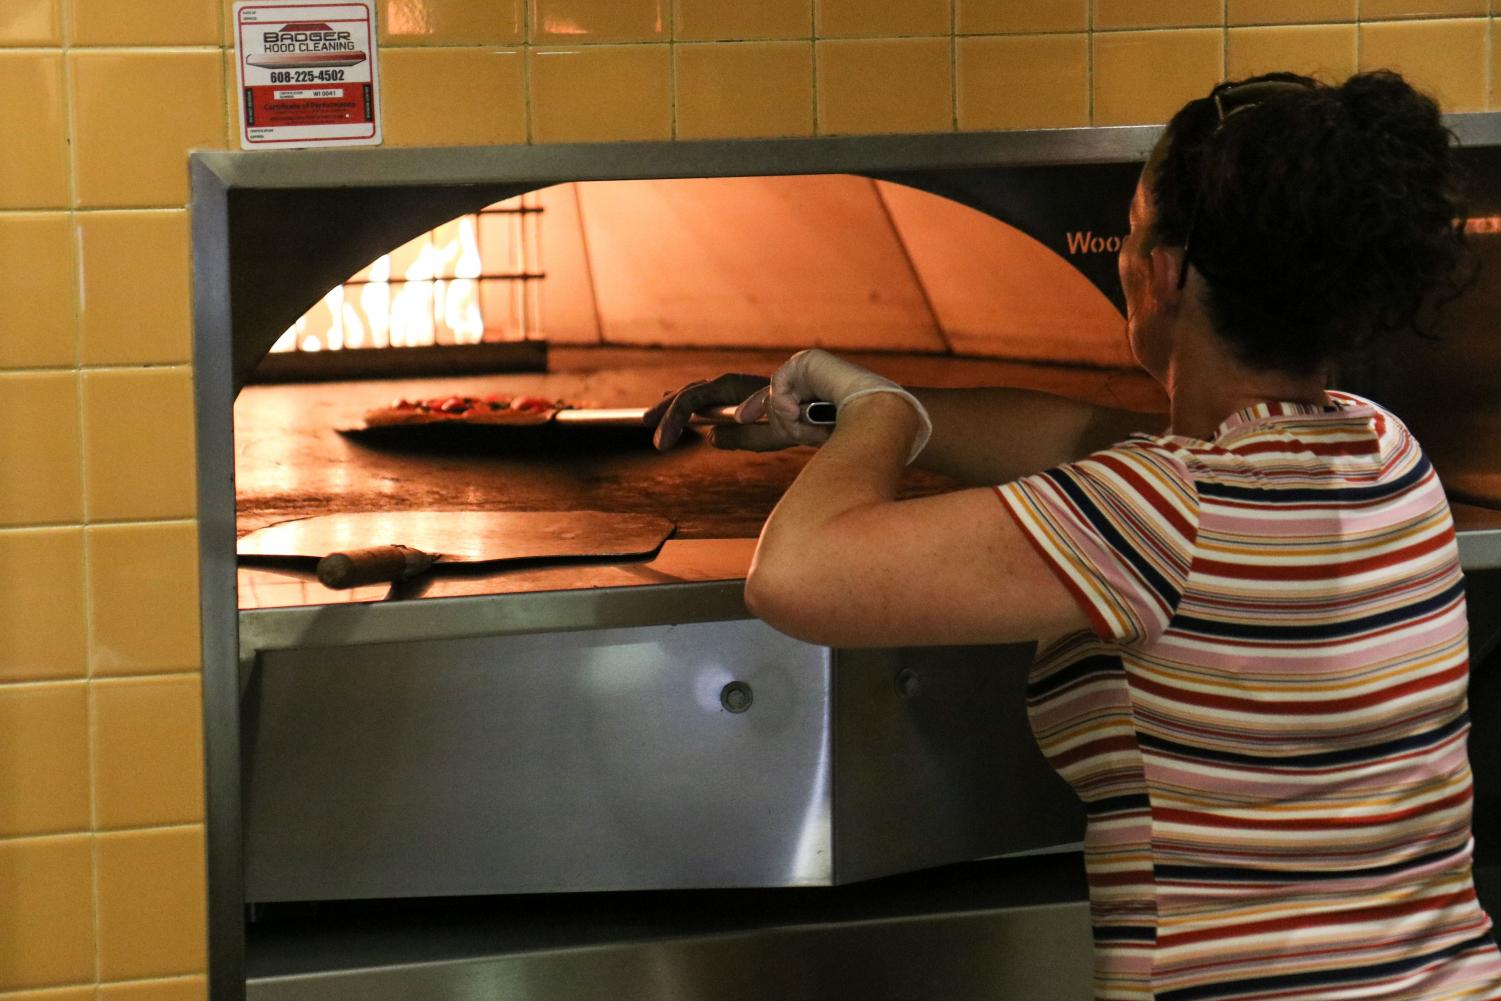 Recently 'Olive,' in the University Center's Down Under received a makeover. The restaurant is now called 'Heat and Fire' featuring two seperate areas: Heat for pizzas, and Fire for other kinds of food like chicken tenders.